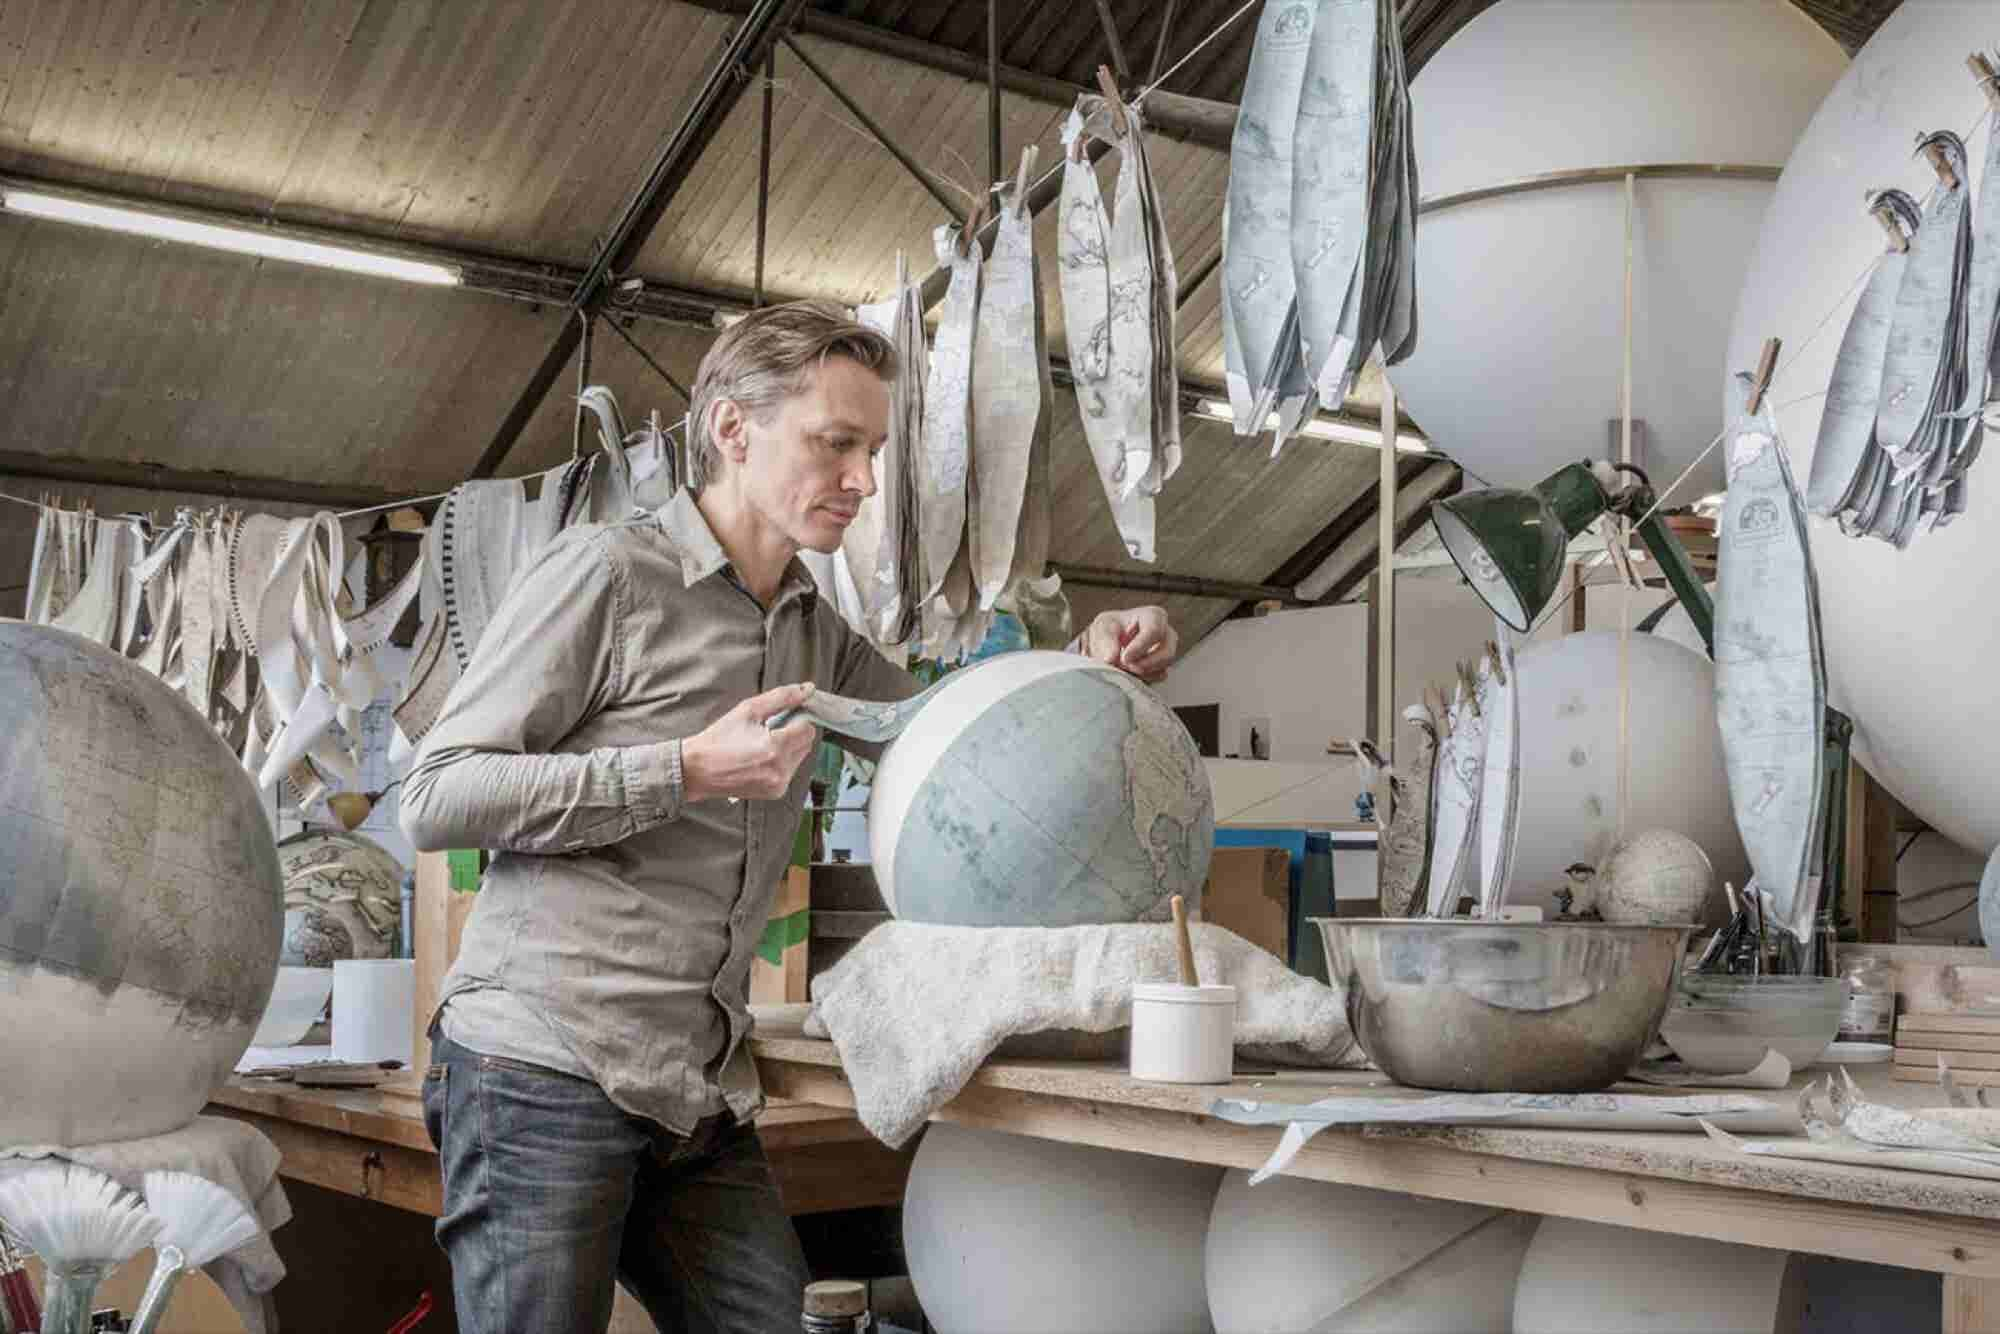 From $150,000 in Debt to $4 Million in Revenue: How One Man Built a Wildly Successful Globe-Making Business